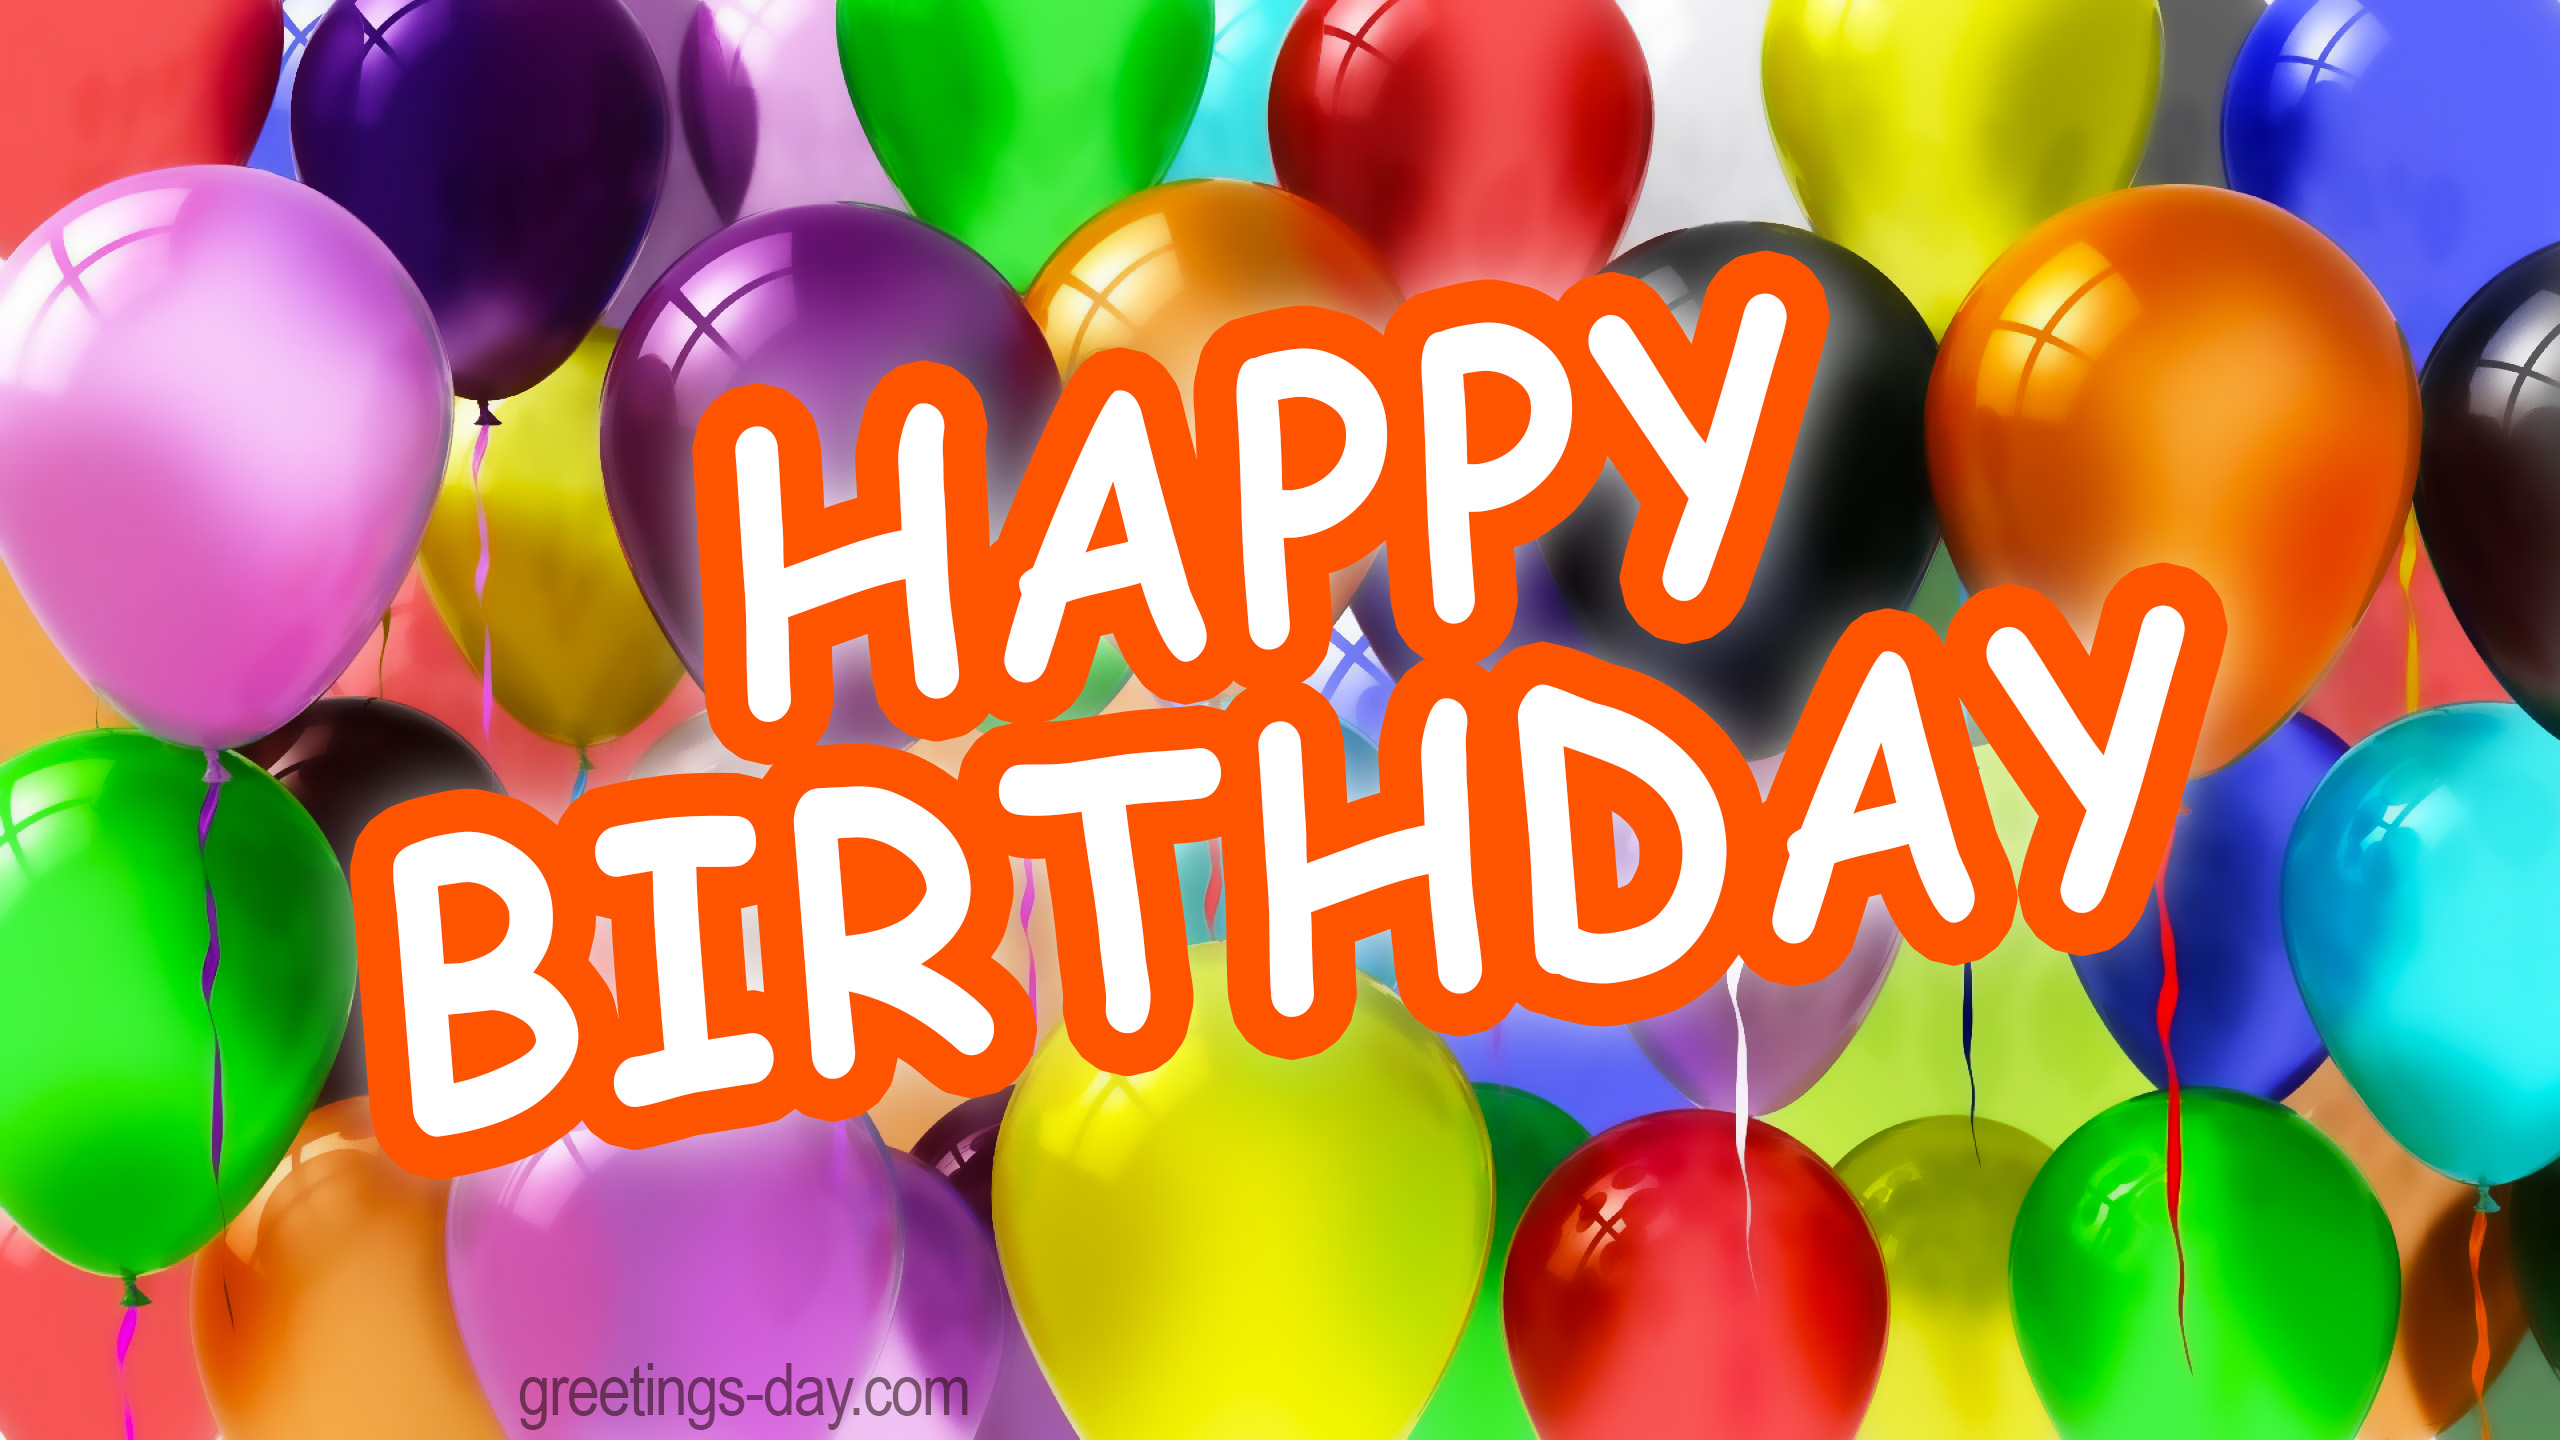 Happy Birthday Ecards, Wishes and Greetings